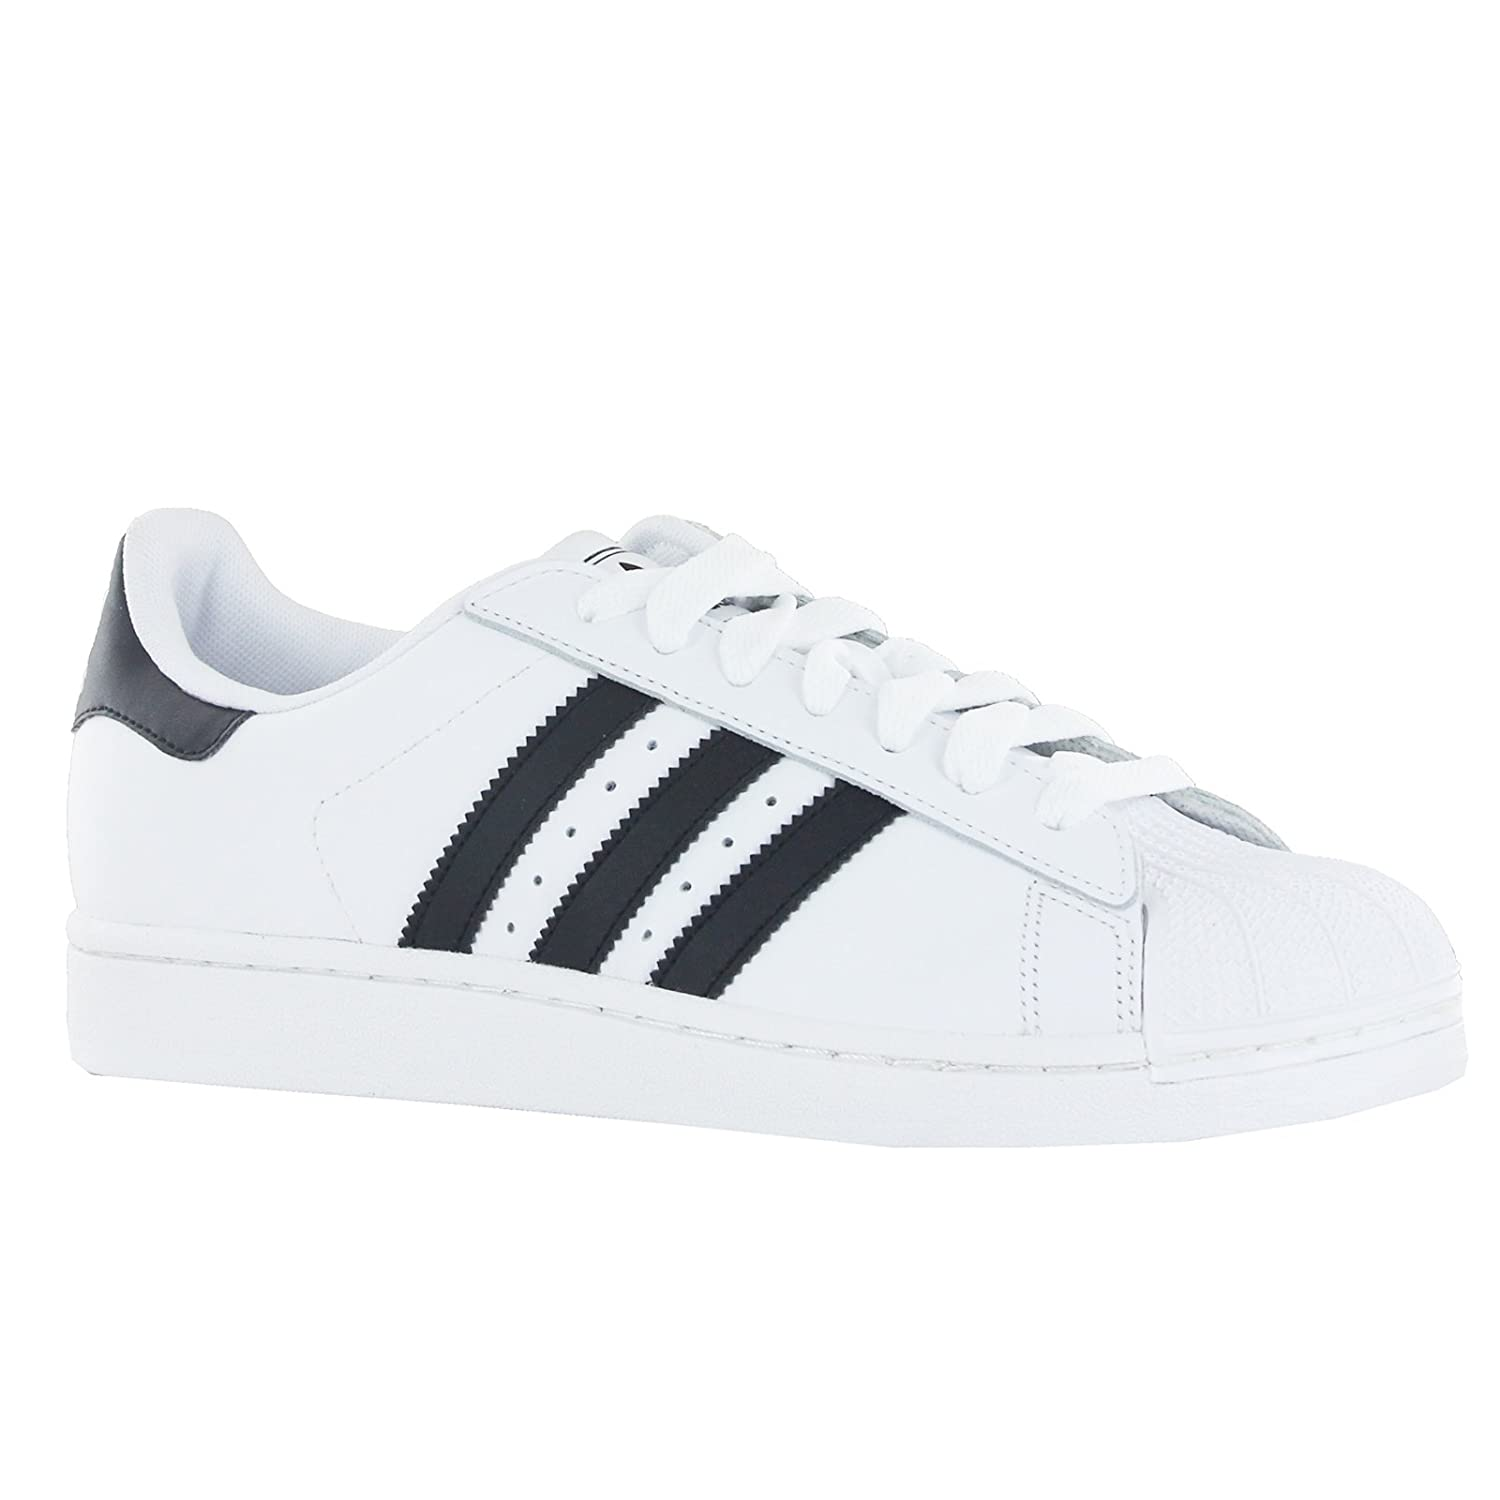 Cheap Adidas superstar 2 black Cheap Adidas originals superstar track top TGGS Inc.